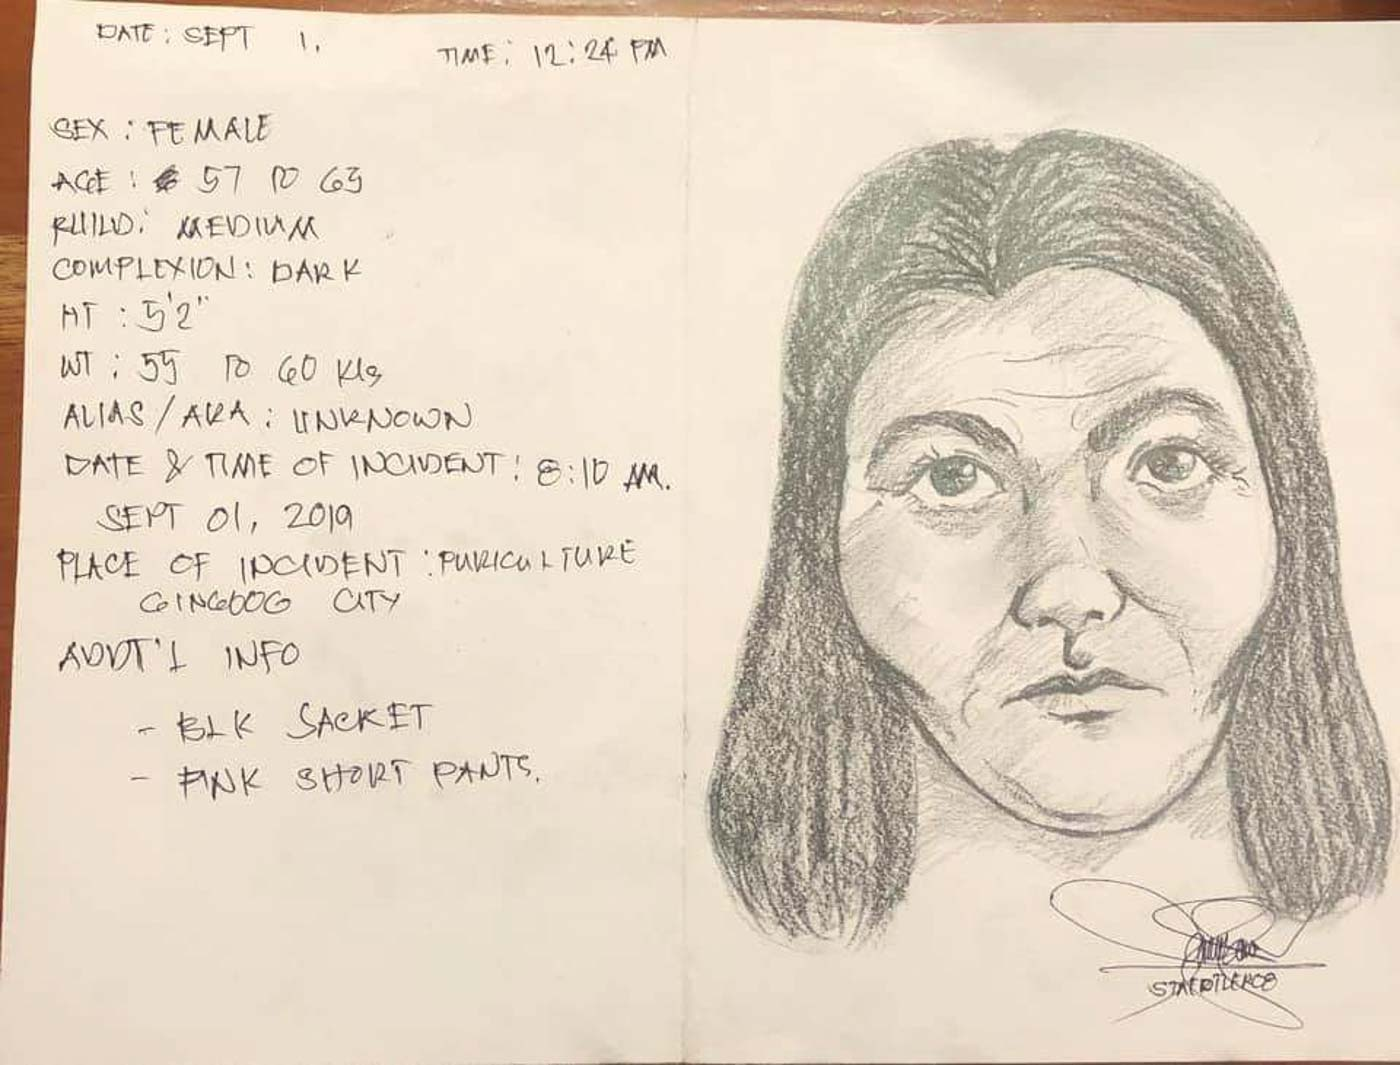 SUSPECT. Cartographic sketch of the suspect. Photo from Gingoog City Police Office